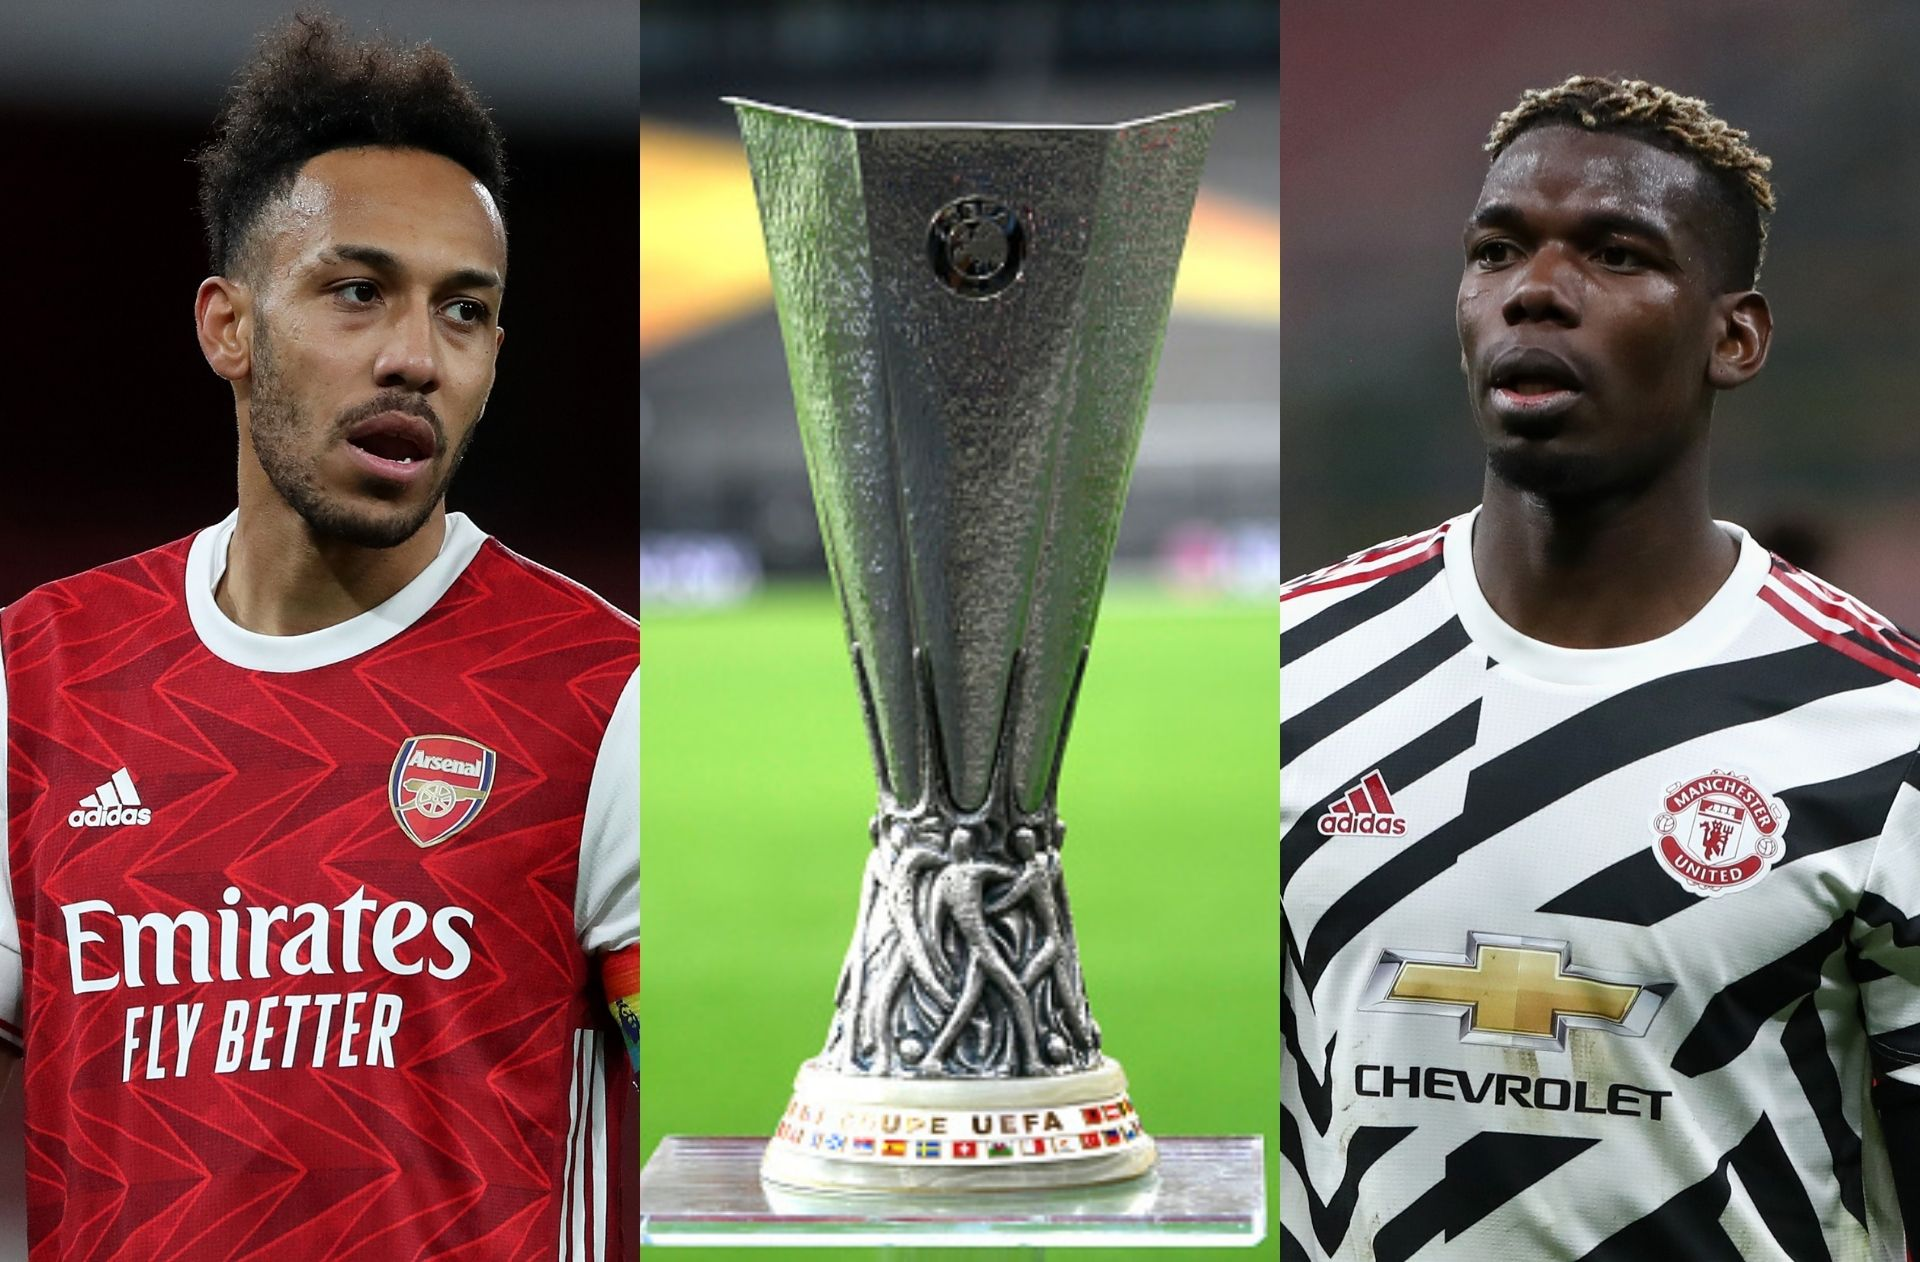 Europa League quarter-final draw: Who will face who?